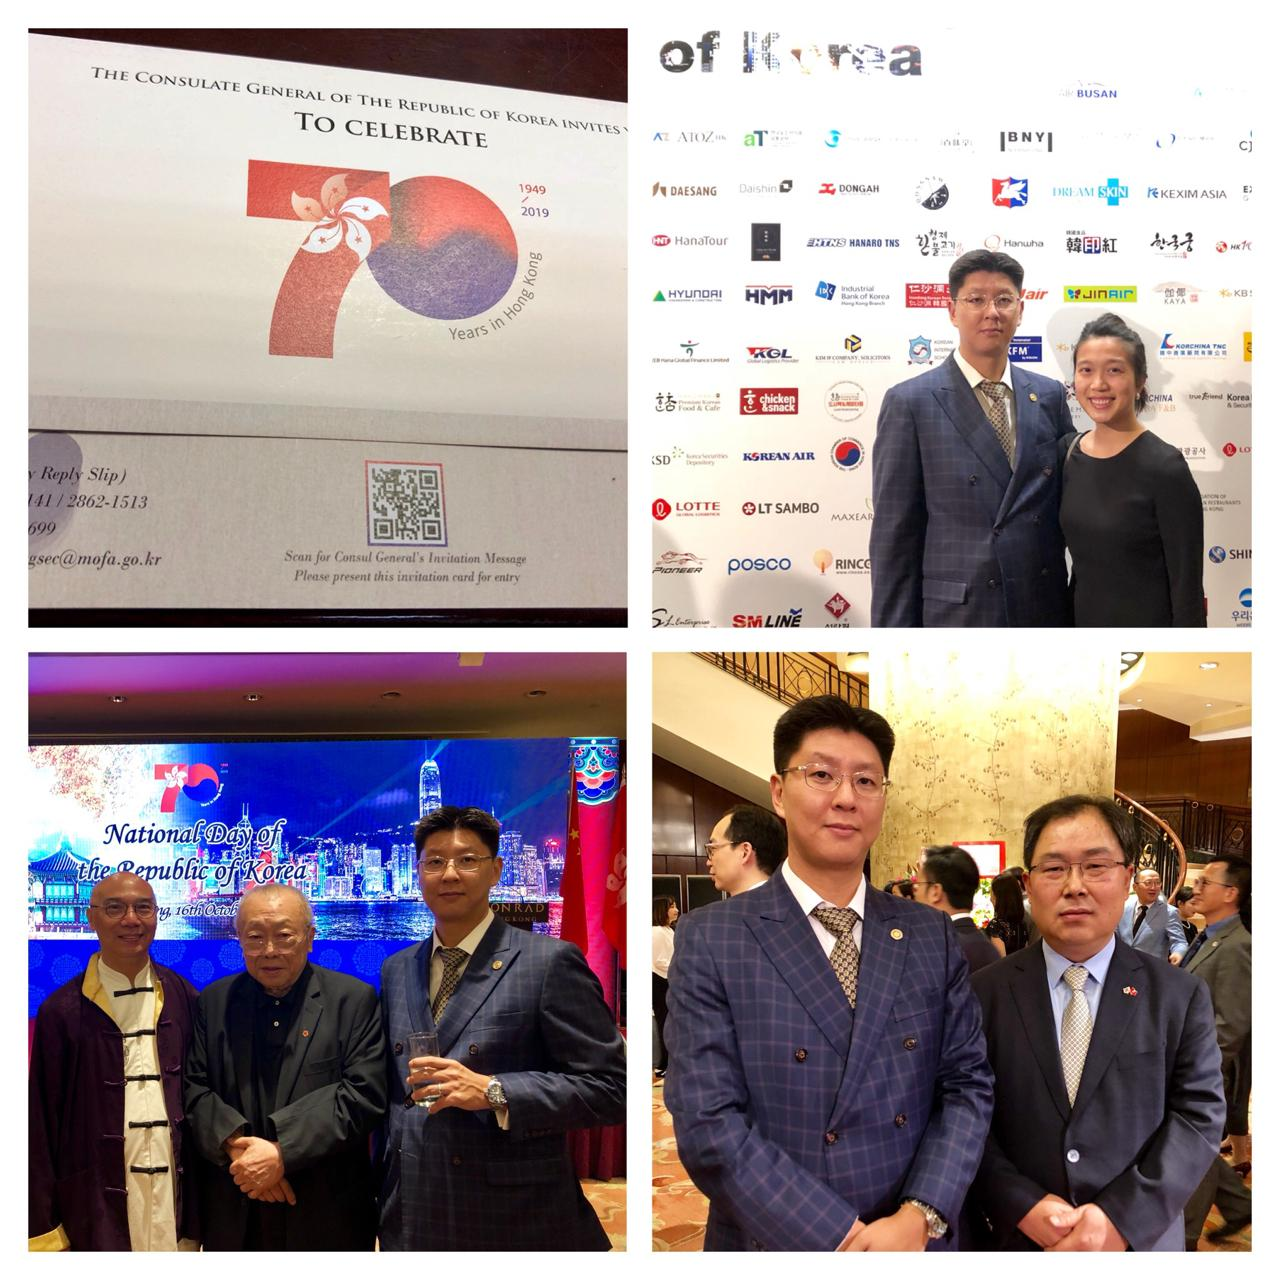 Congratulations to the Consulate General of the Republic of Korea on 70 years  in Hong Kong